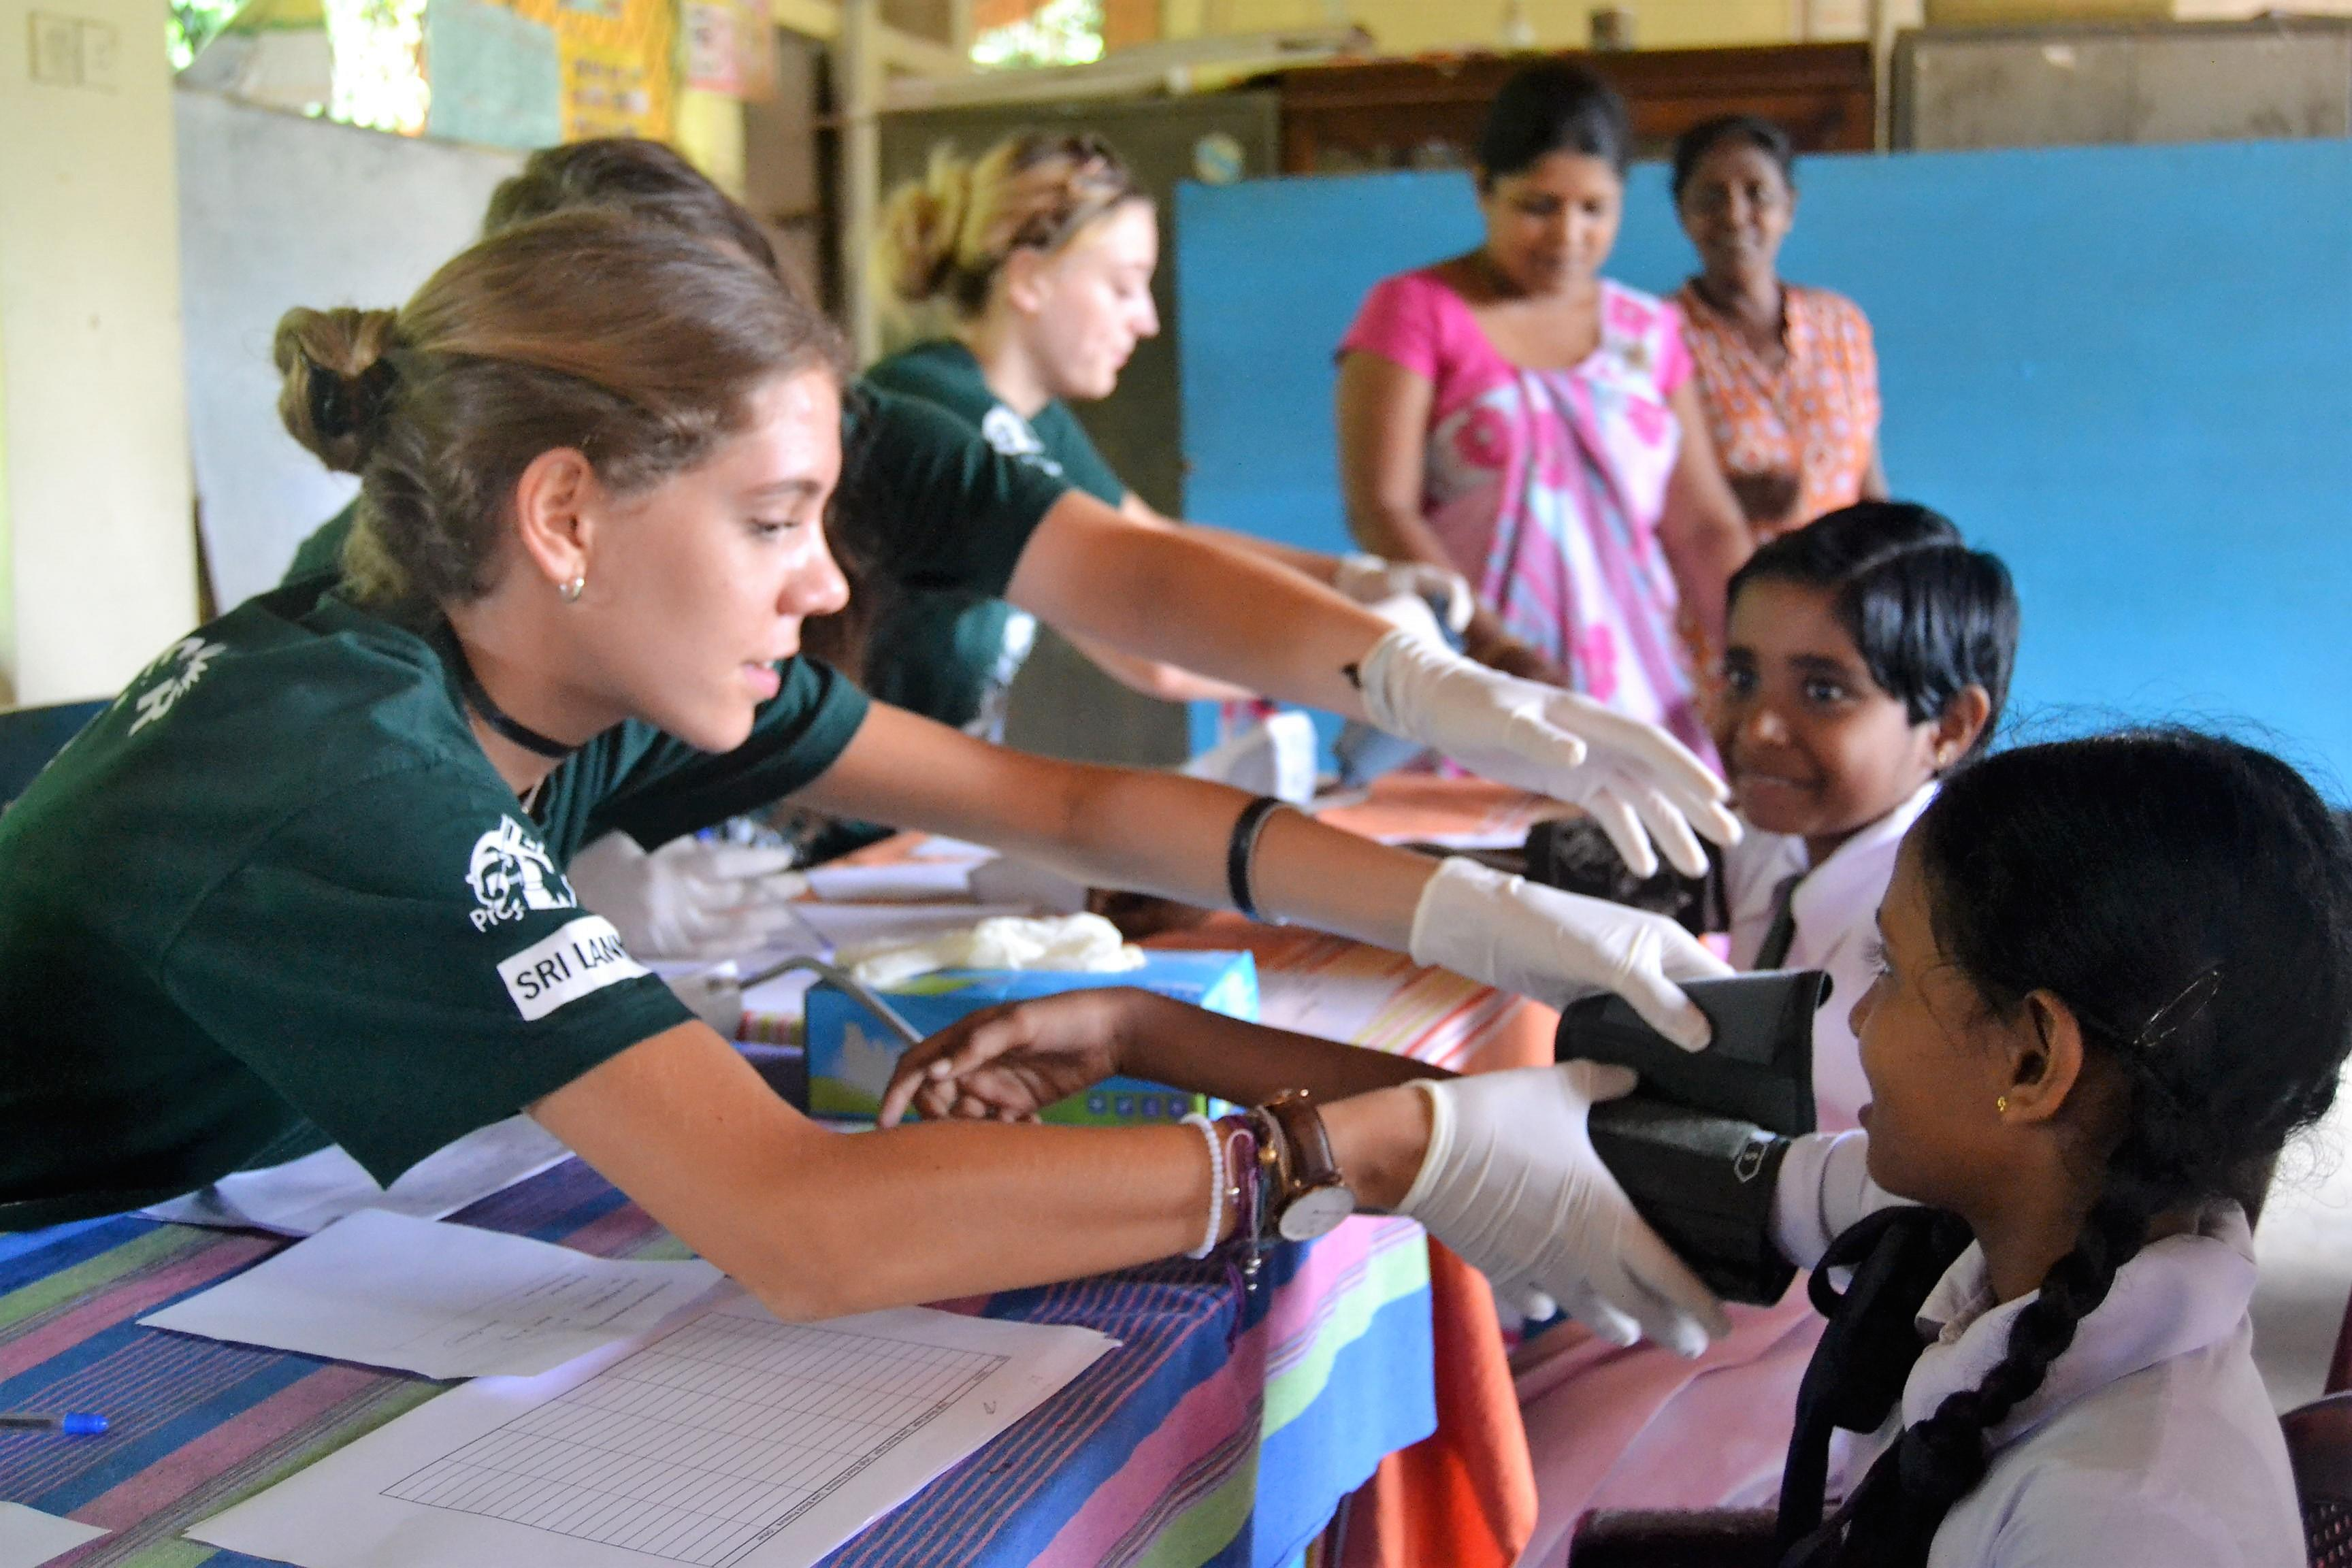 A group of interns are pictured measuring blood pressure levels as part of their public health internship in Sri Lanka.